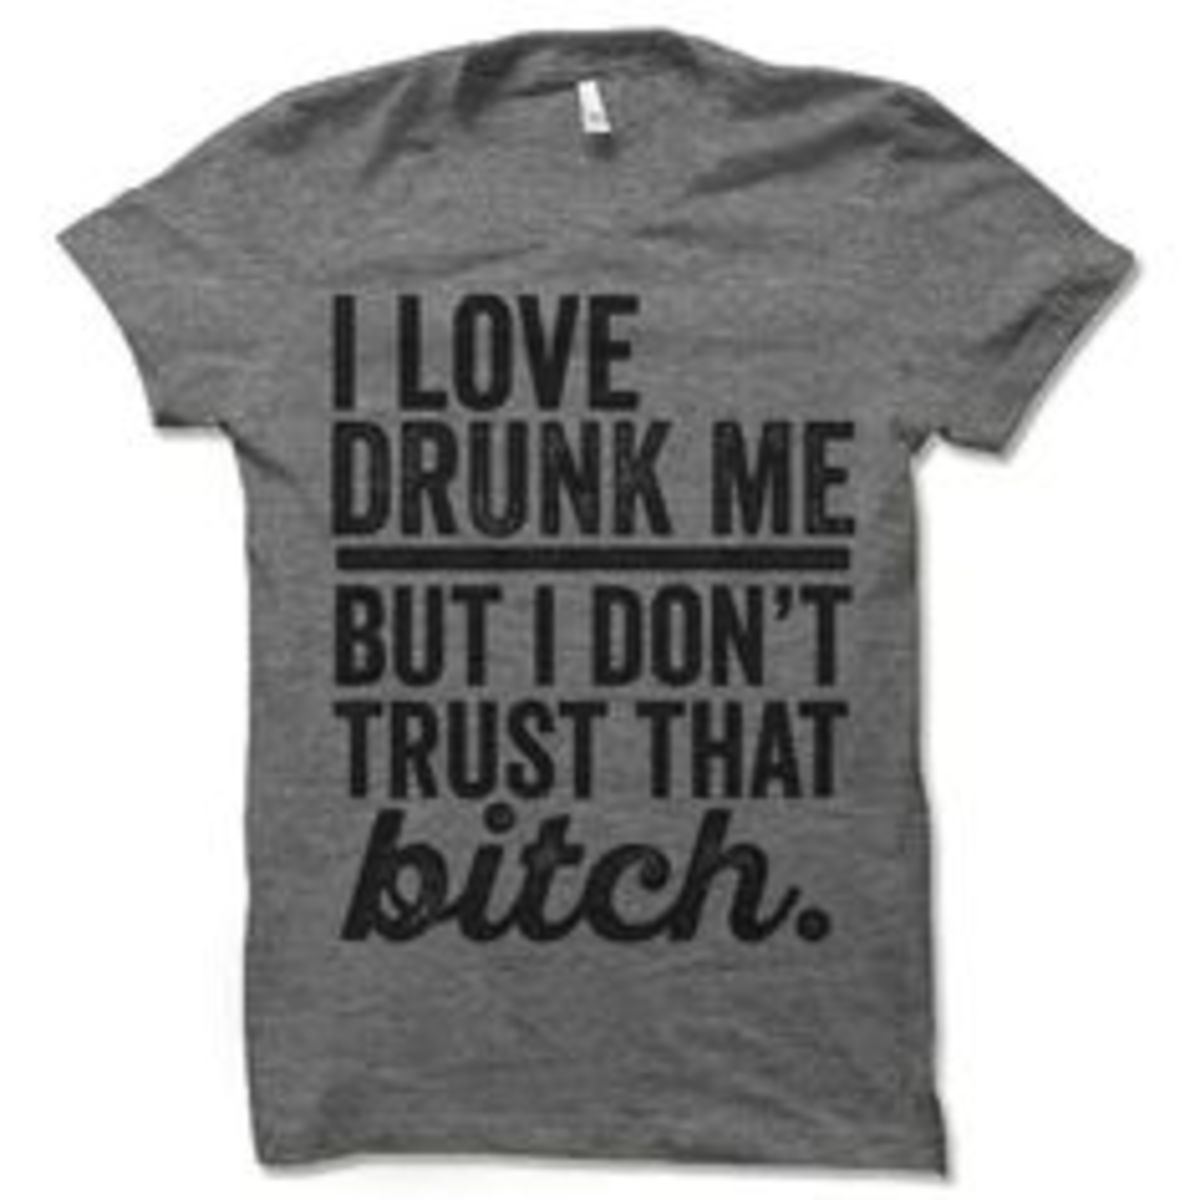 I find this shirt hilariously accurate regarding me as well as some of my friends. Not wearing it though.